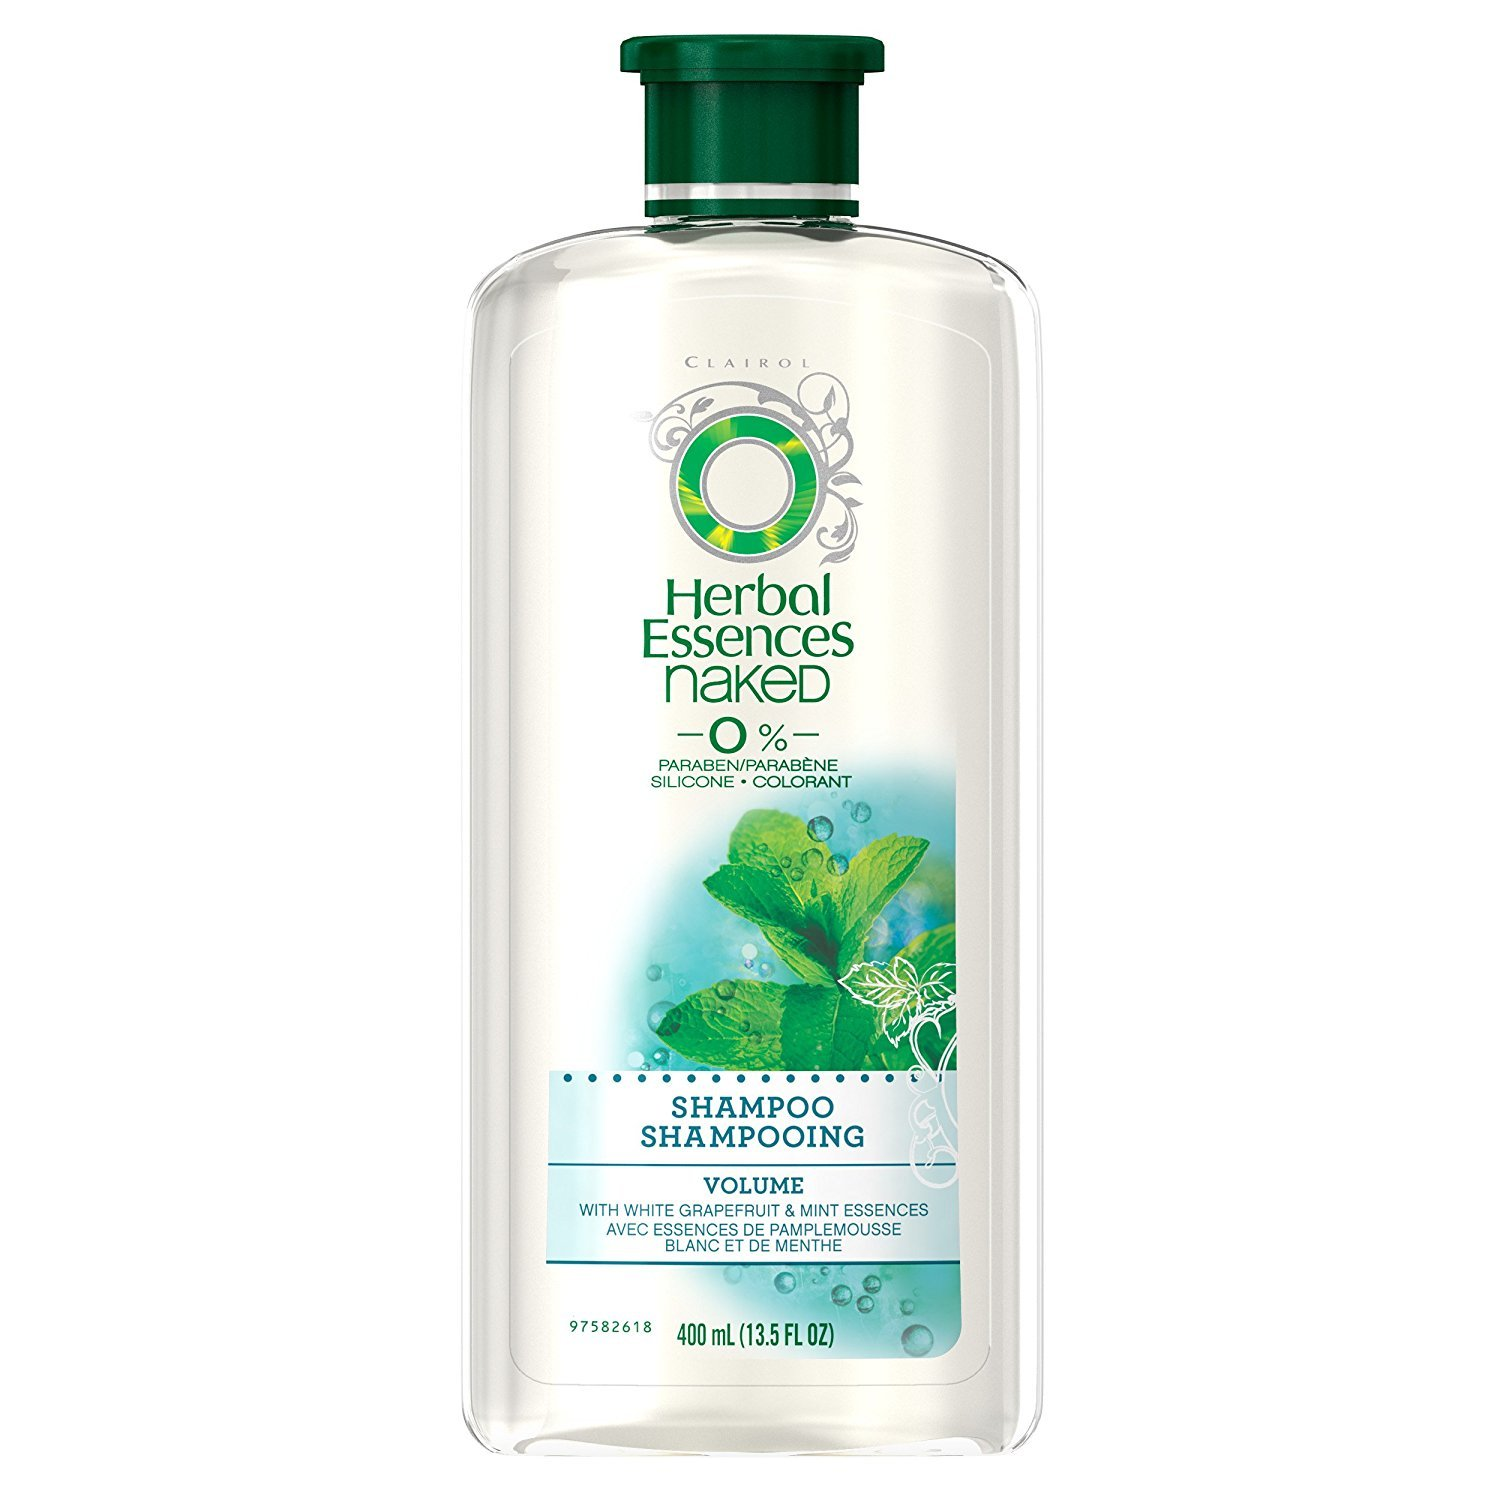 Herbal Essences Naked Volume Shampoo, 13.5 Fluid Ounce (Packaging May Vary)